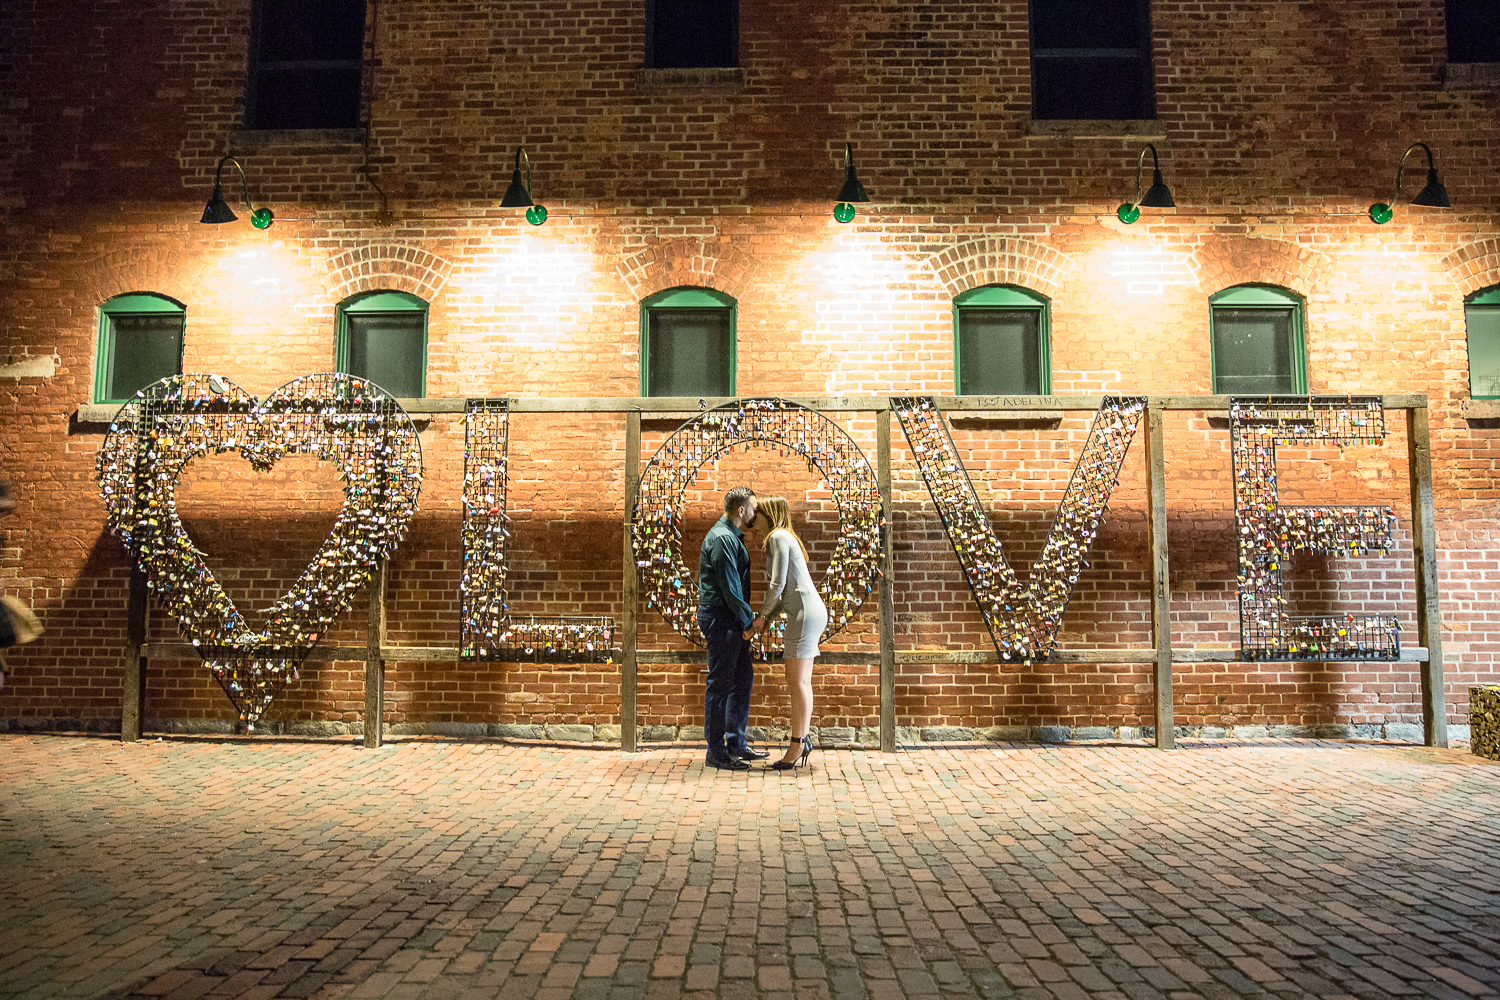 Distillery-District-Polson-Pier-Humber-Bay-Park-Engagement-Photos-0042.jpg